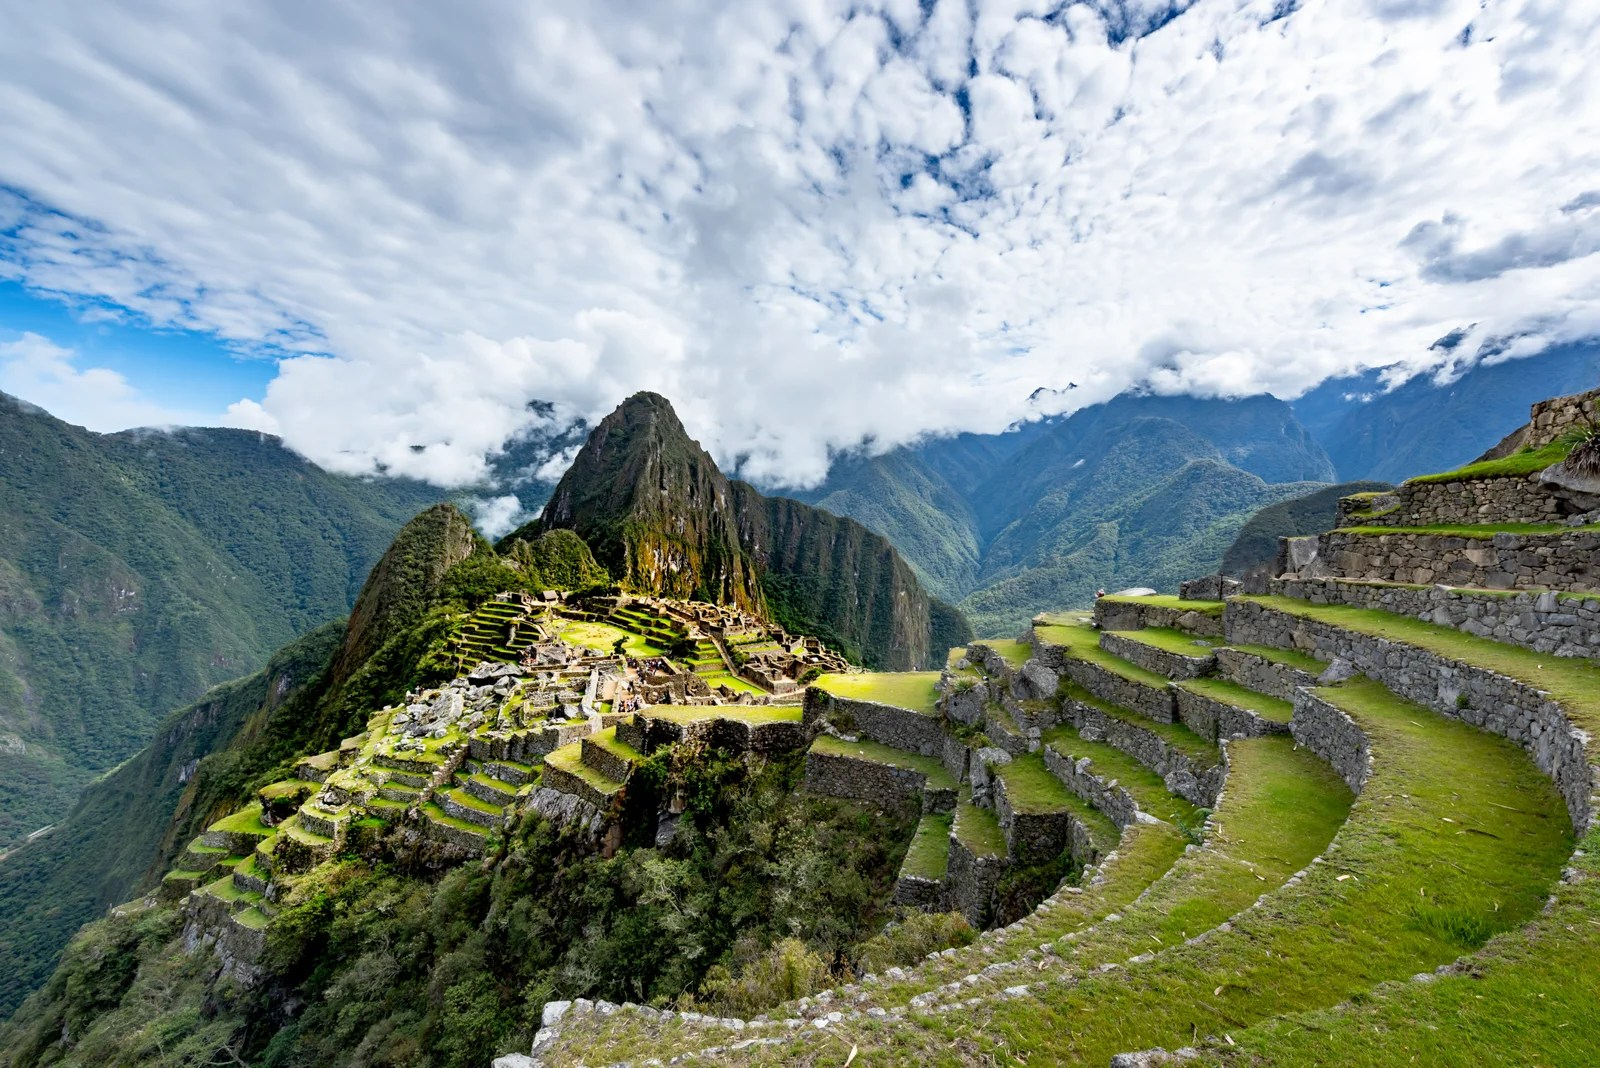 9 mistakes travelers make when visiting Machu Picchu